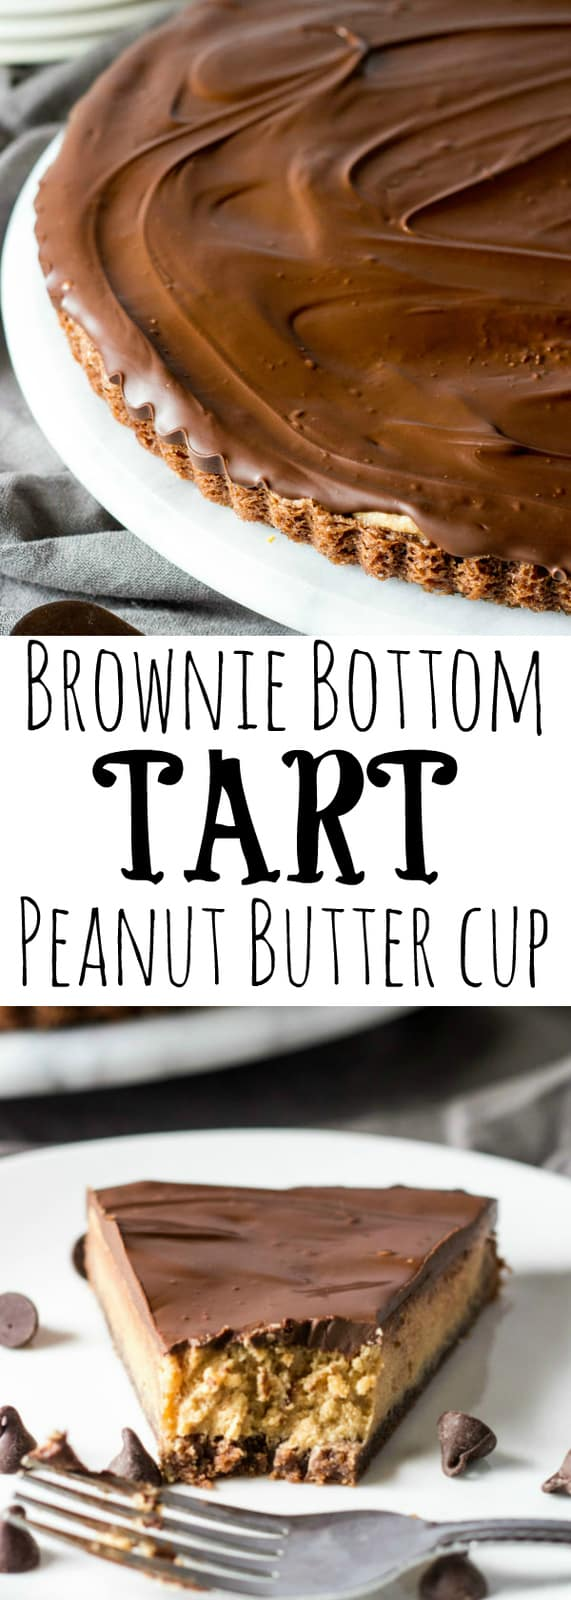 Brown Bottom Peanut Butter Cup Tart collage with words in middle